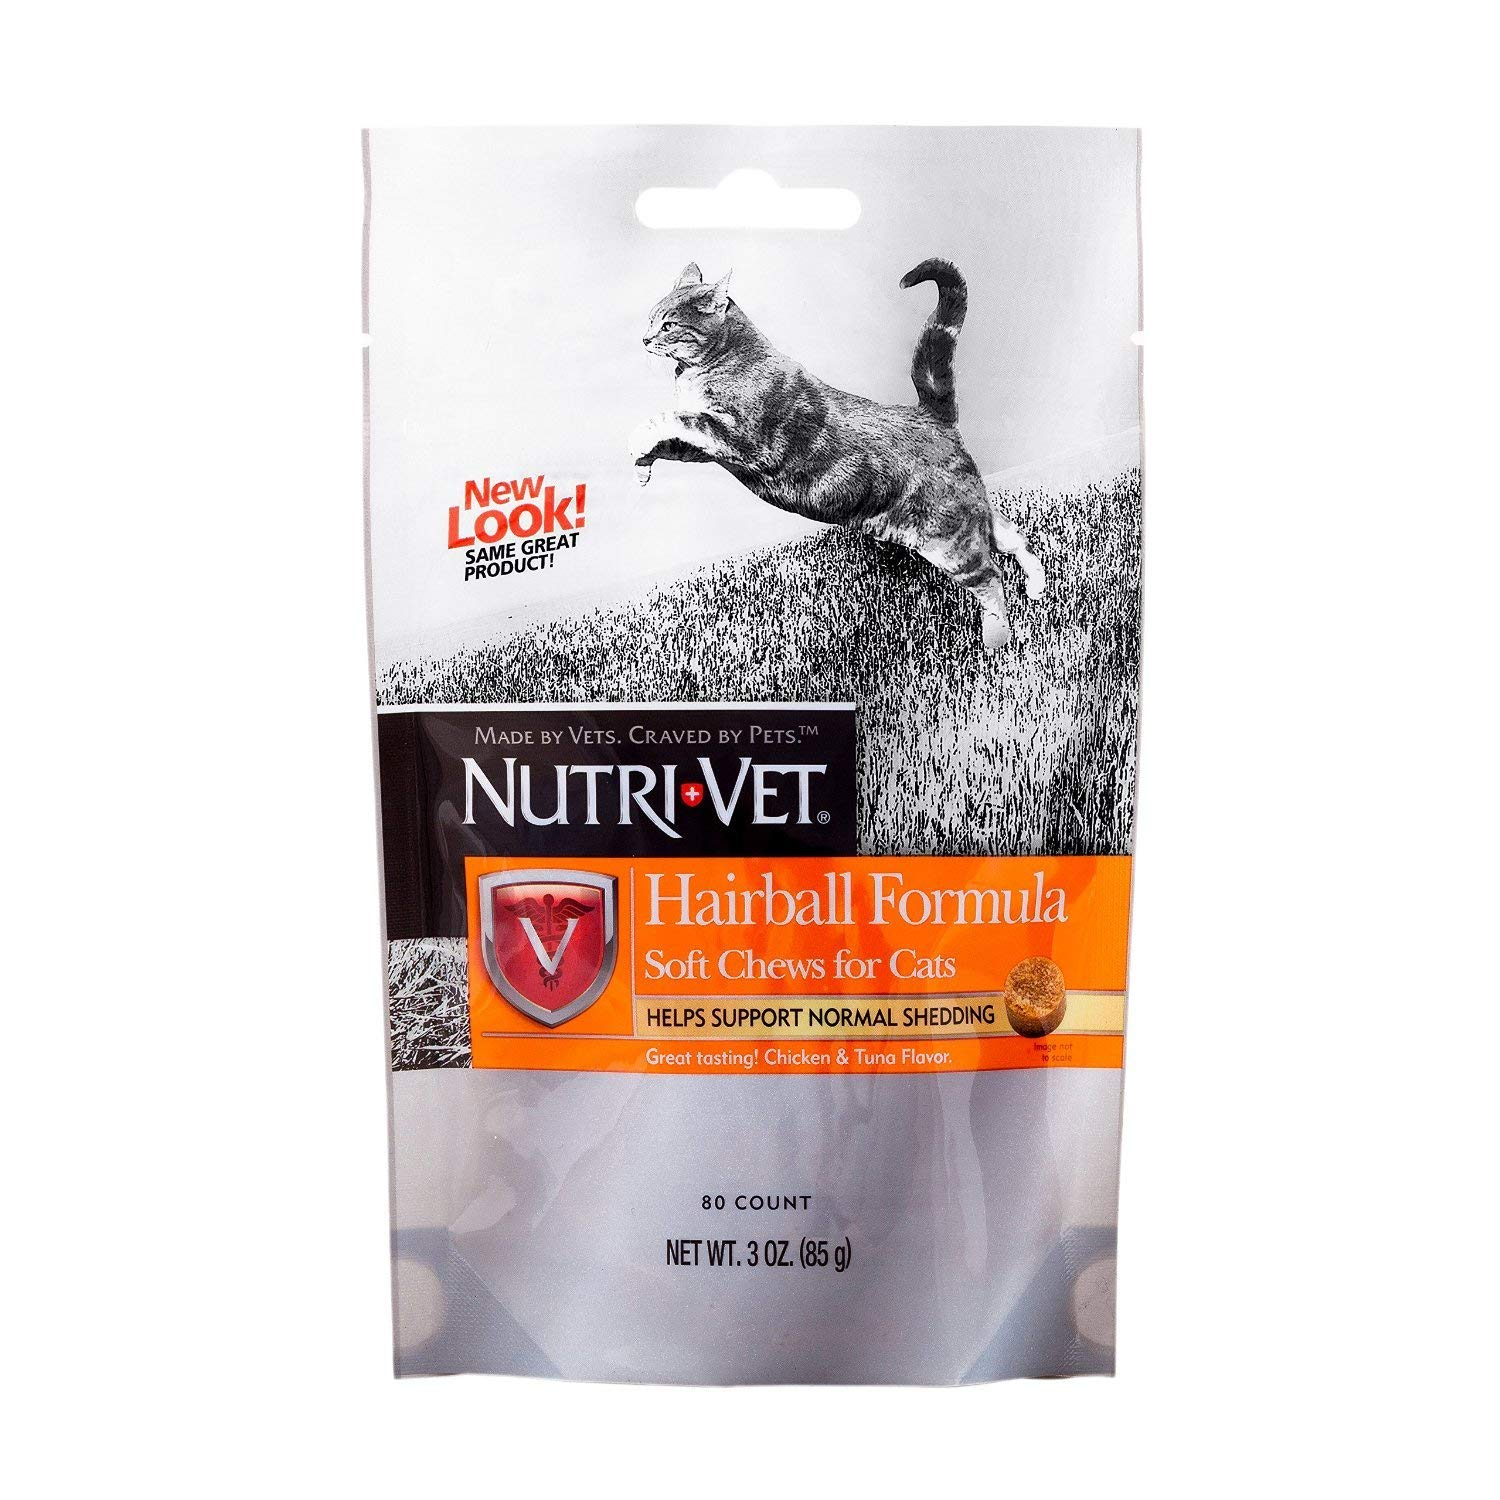 Nutri-Vet Hairball Formula Soft Chew Supplement for Cats 2.5 oz.(pack of 2)